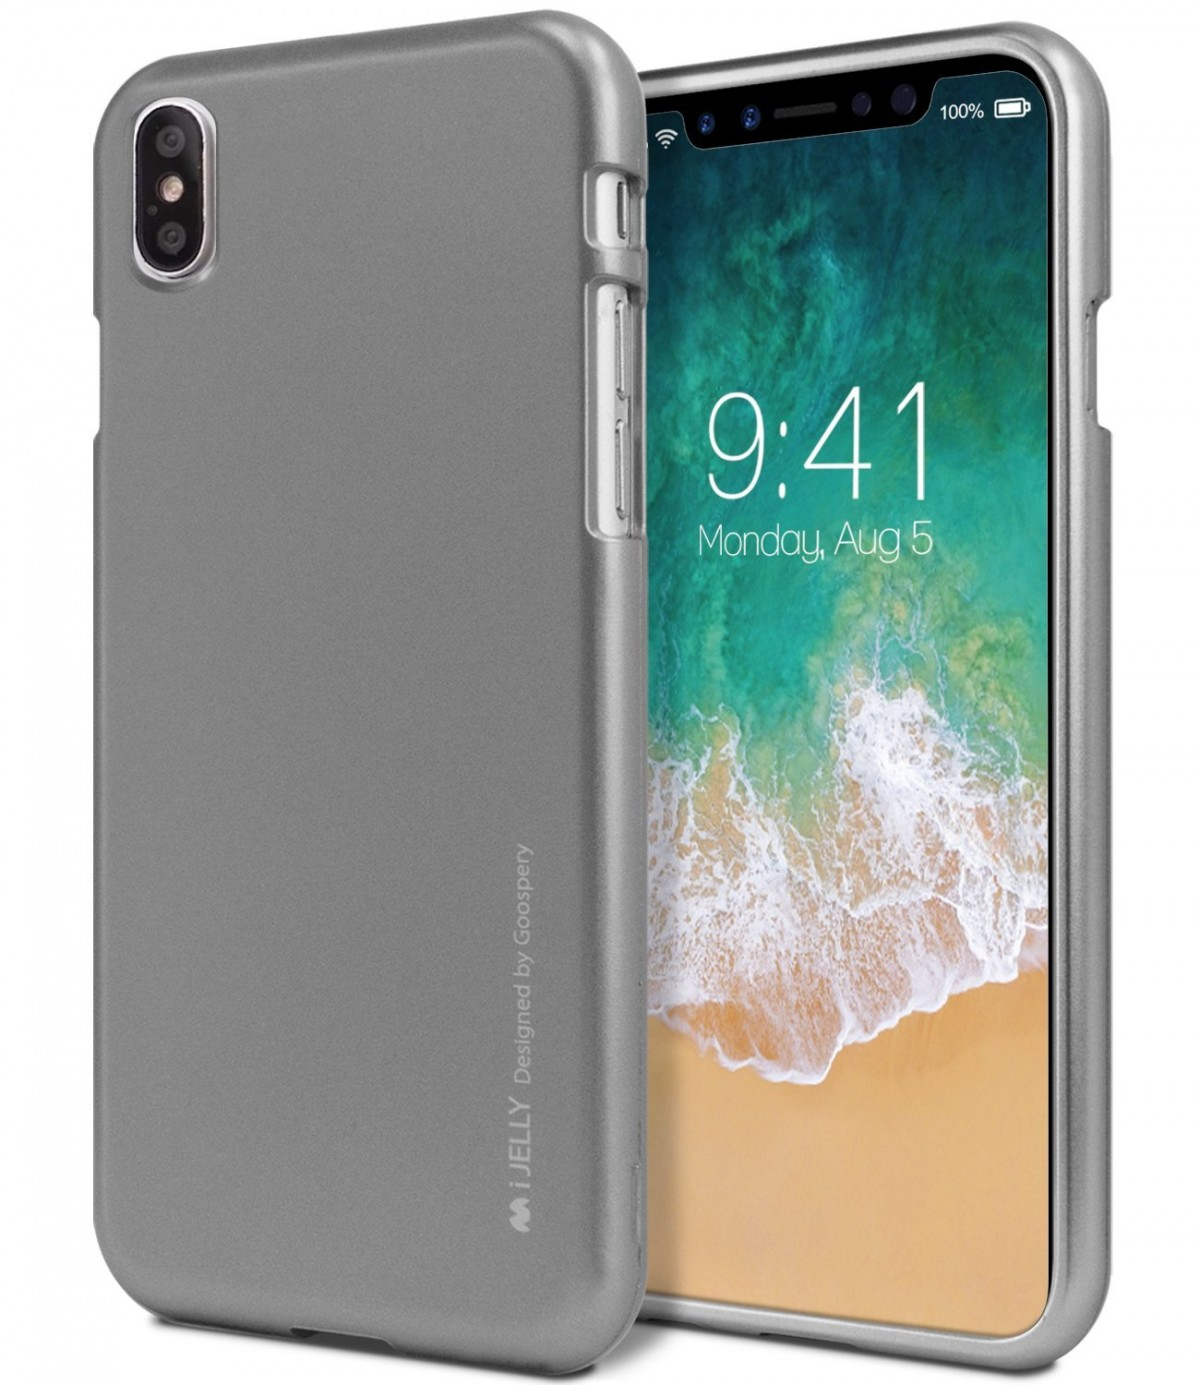 Pouzdro MERCURY iJELLY METAL APPLE IPHONE X ŠEDÉ 1d7aea39e63